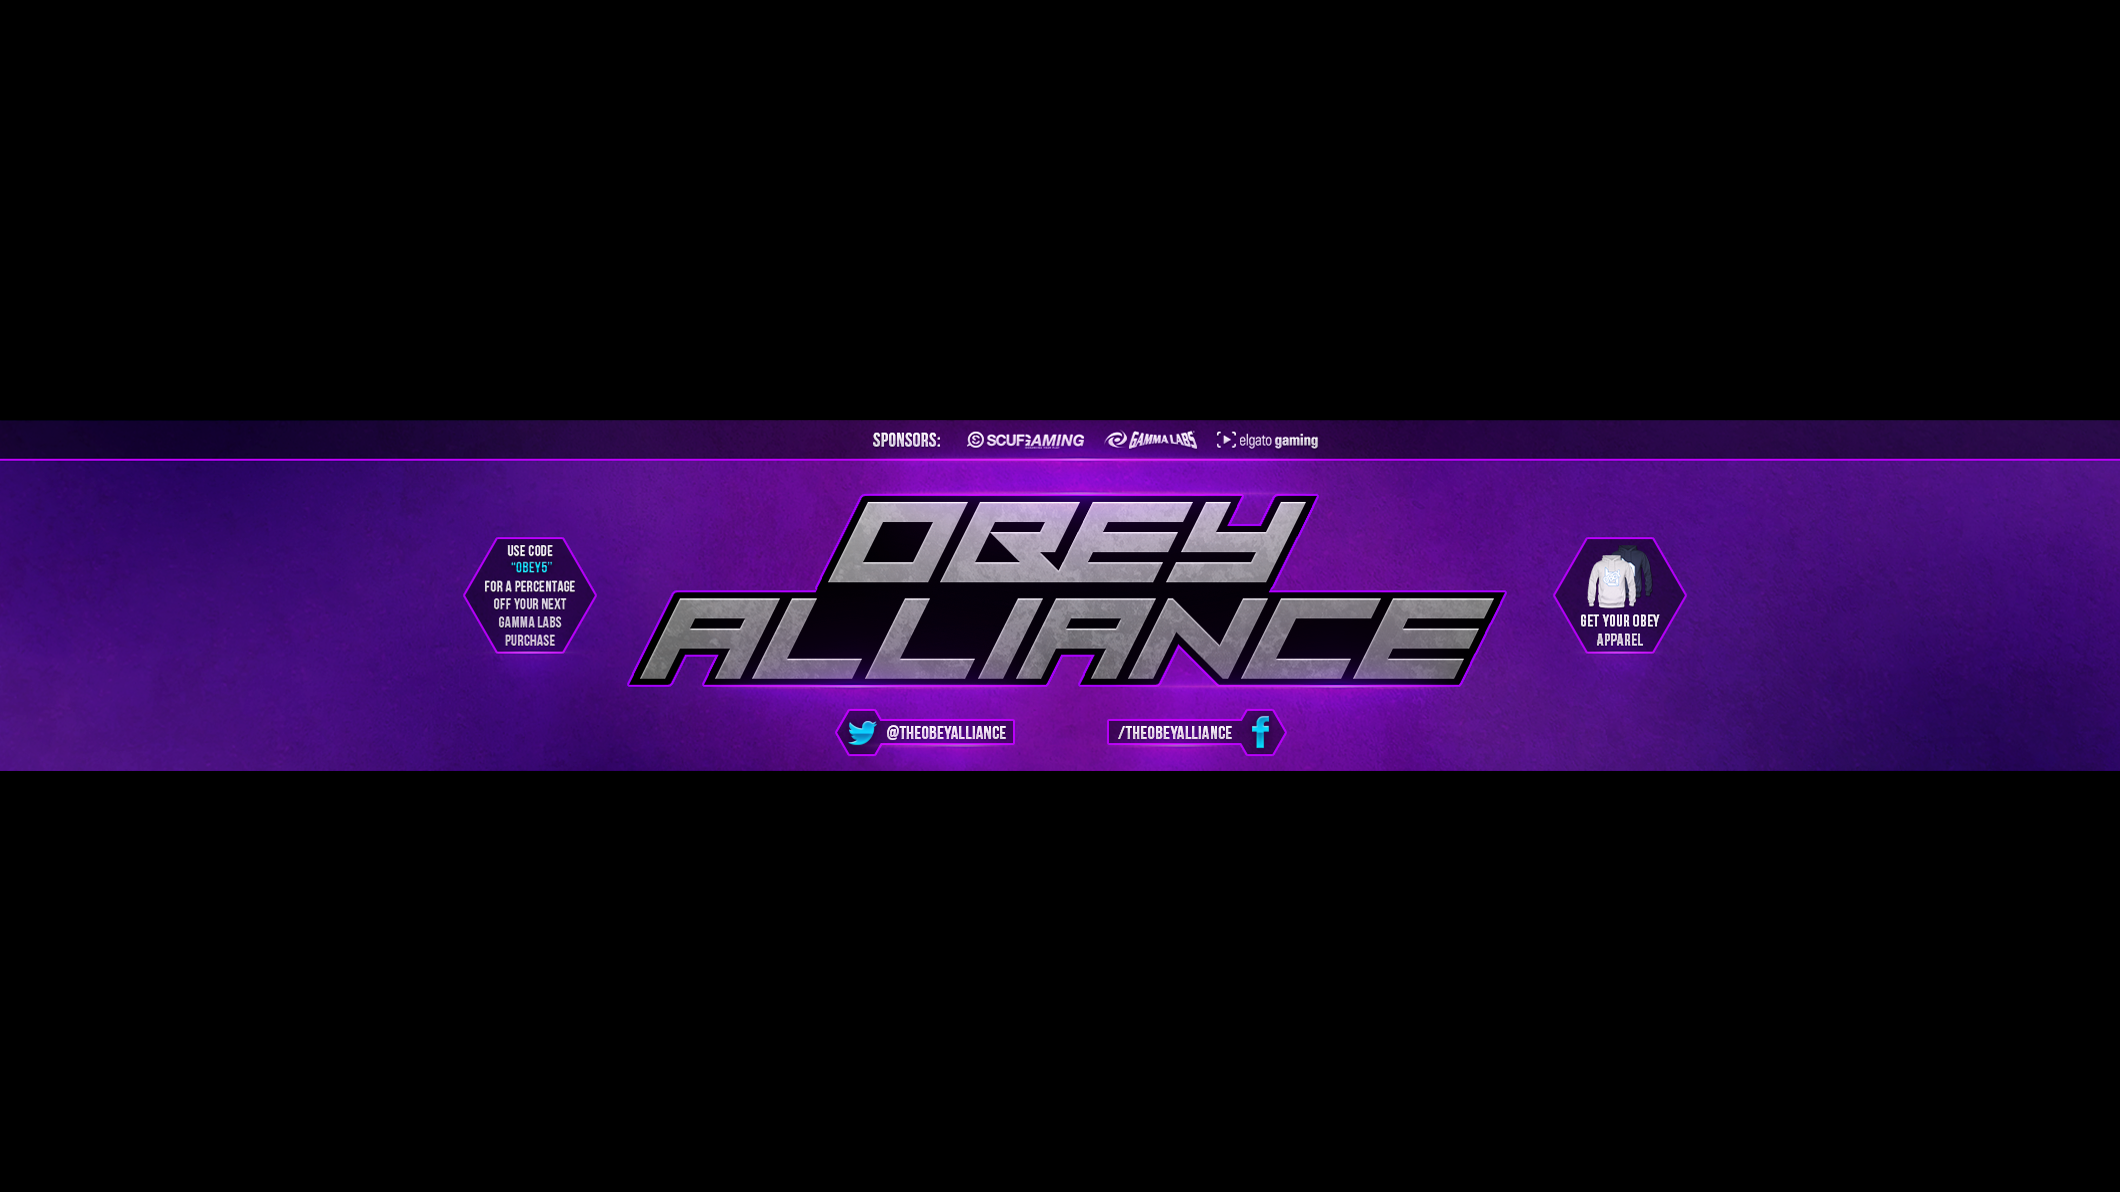 Obey Alliance banner by Tacoxlegendary on DeviantArt